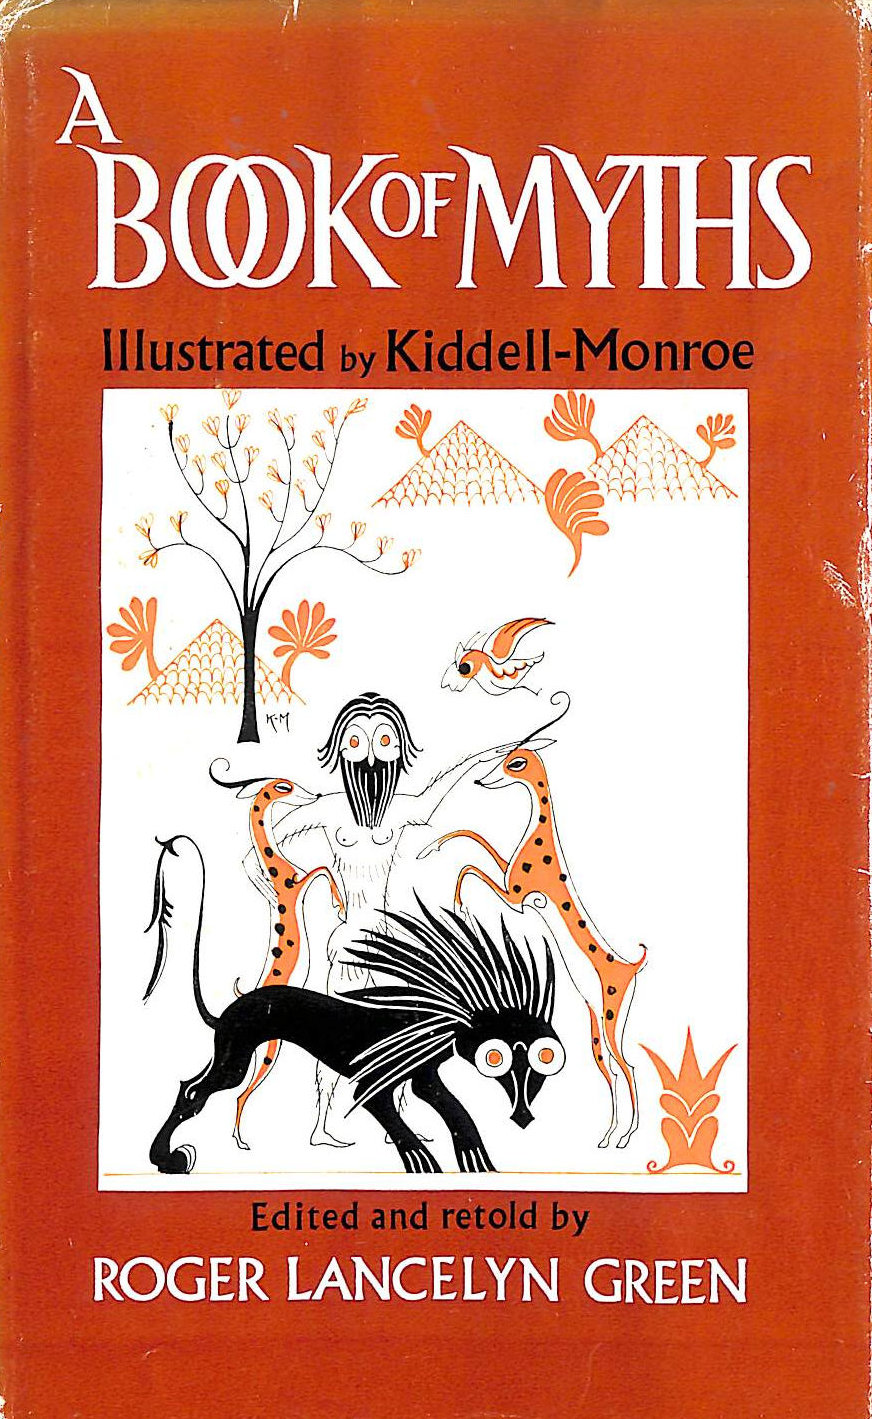 Image for A Book of Myths (Children's Illustrated Classics S.)